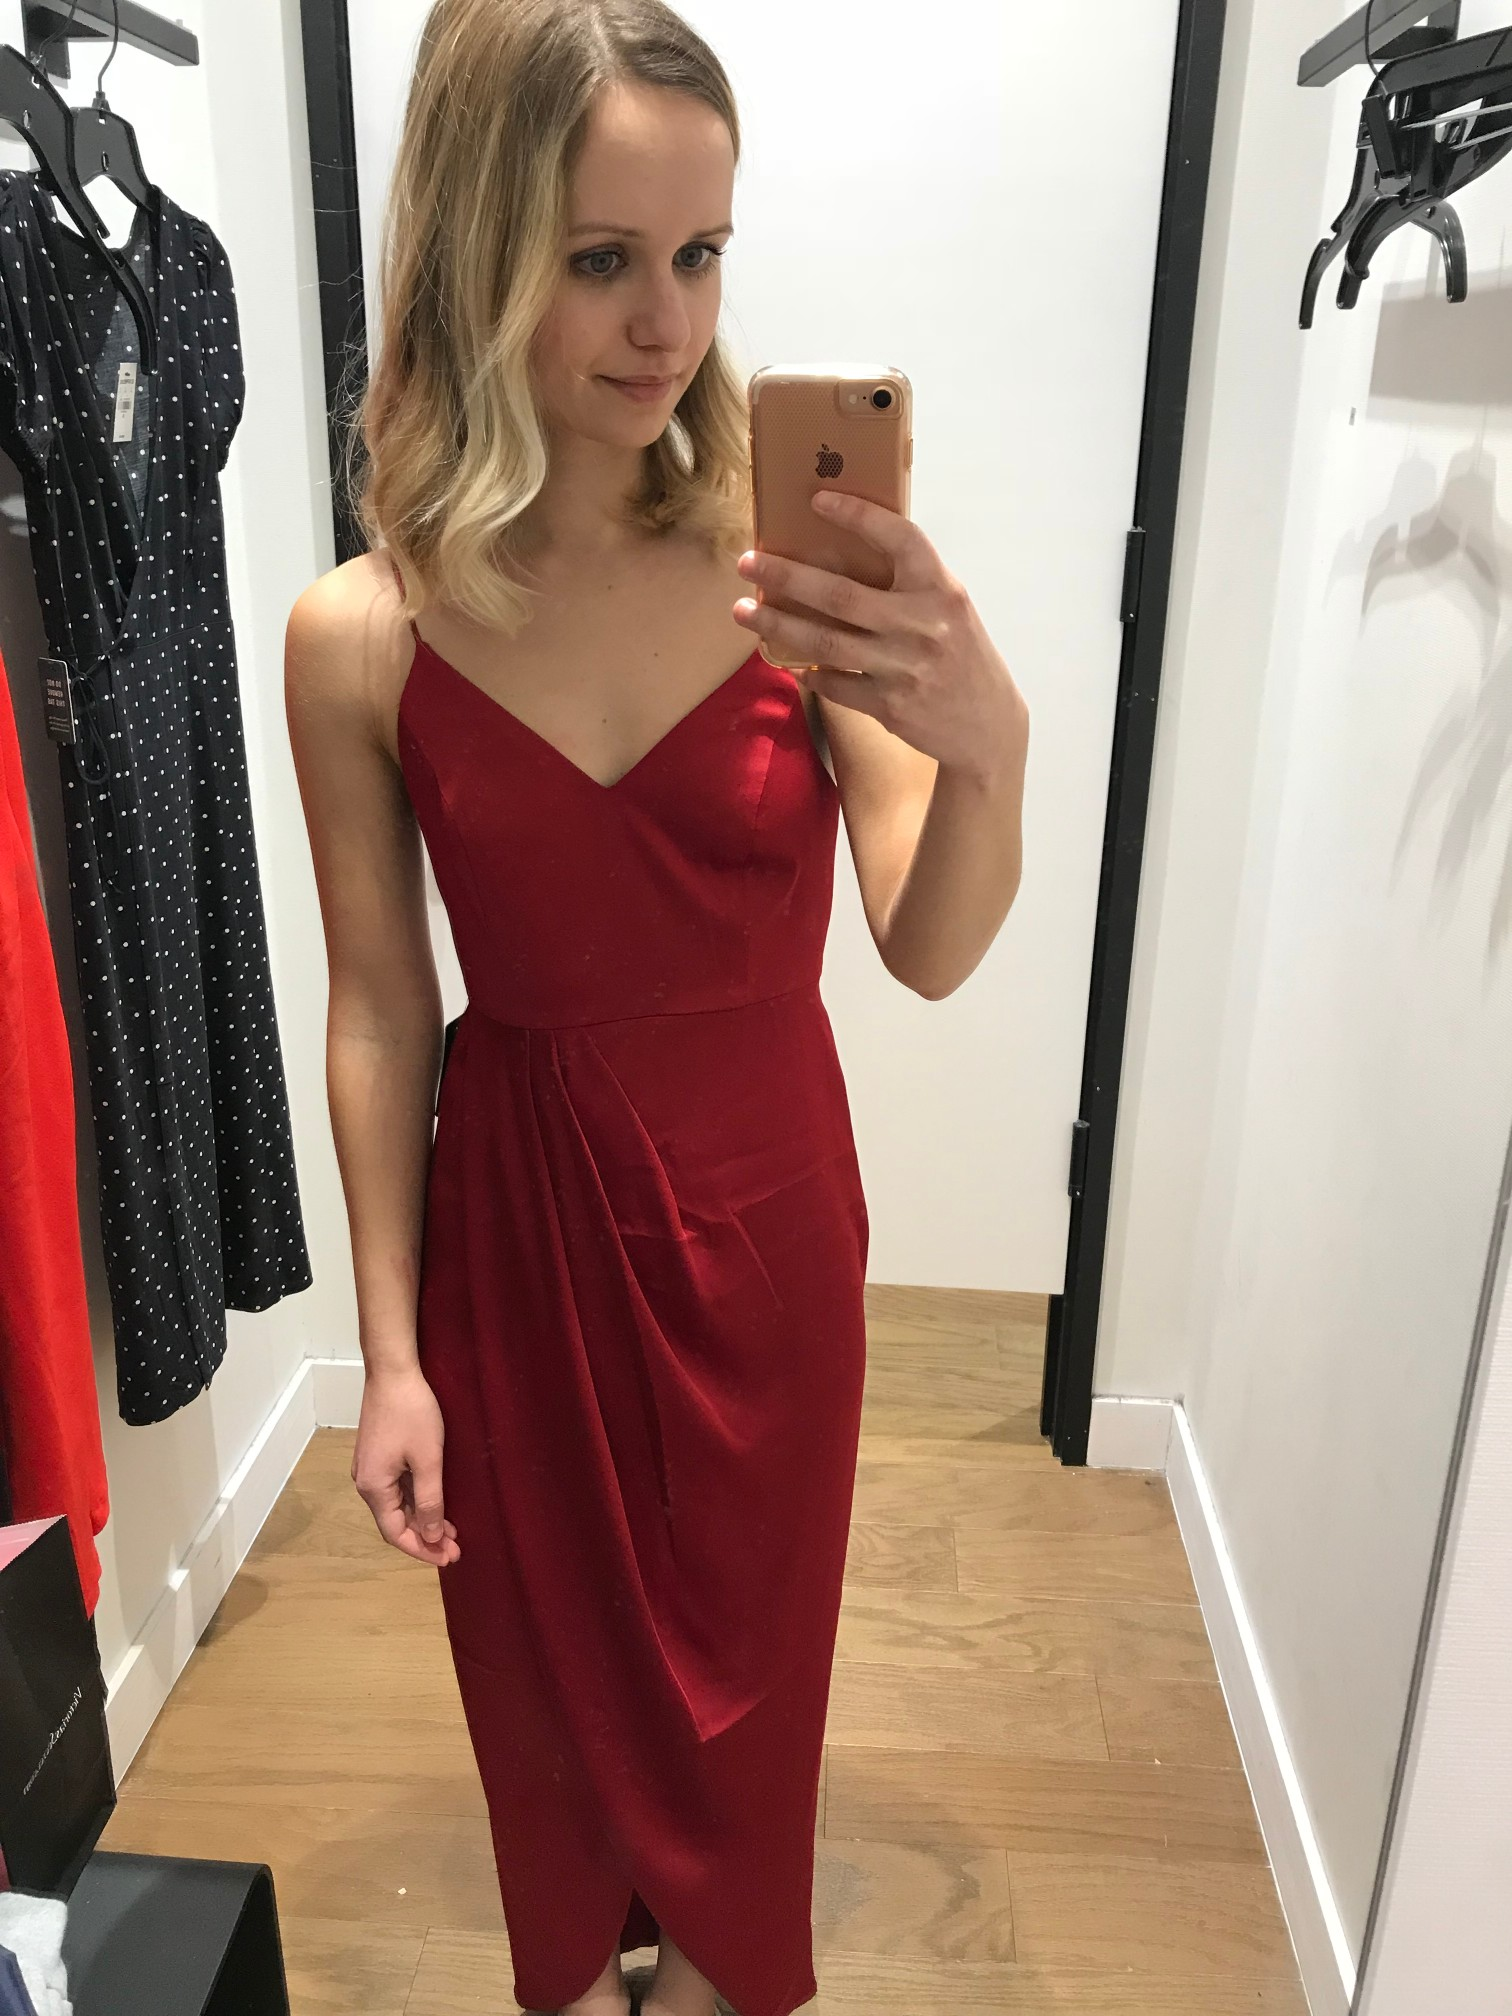 Express Satin Wrap Fit and Flare Maxi Dress Express   Fitting Room Adventures by Little Things Olga